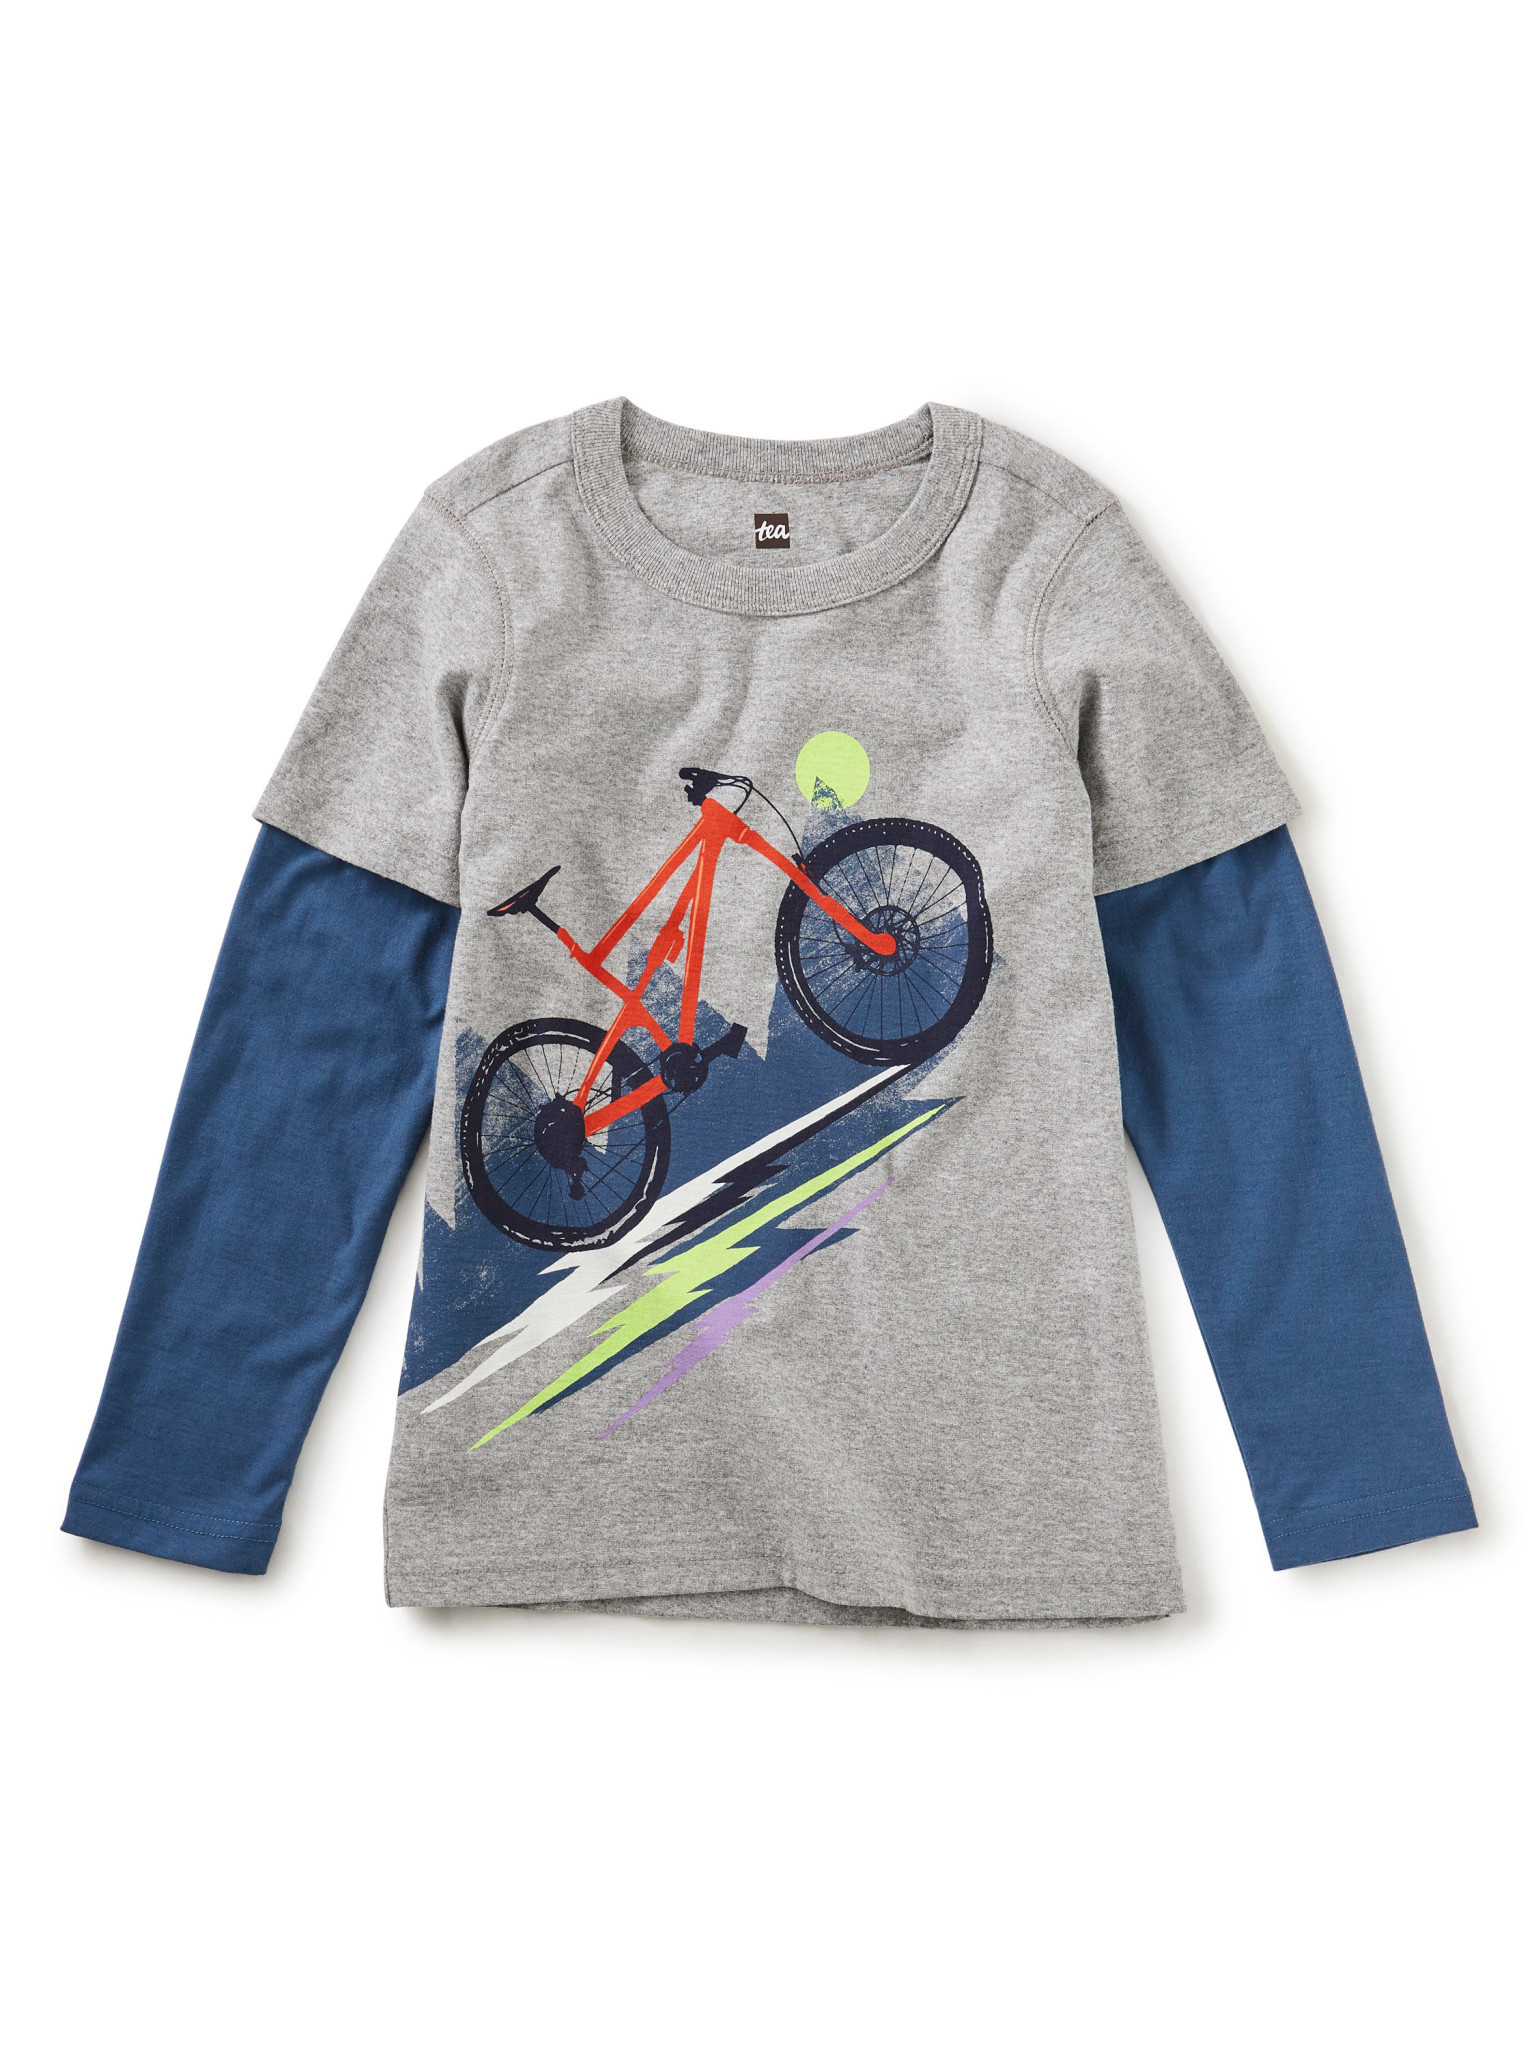 Tea Collection Bike Brigade Graphic Tee - Grout